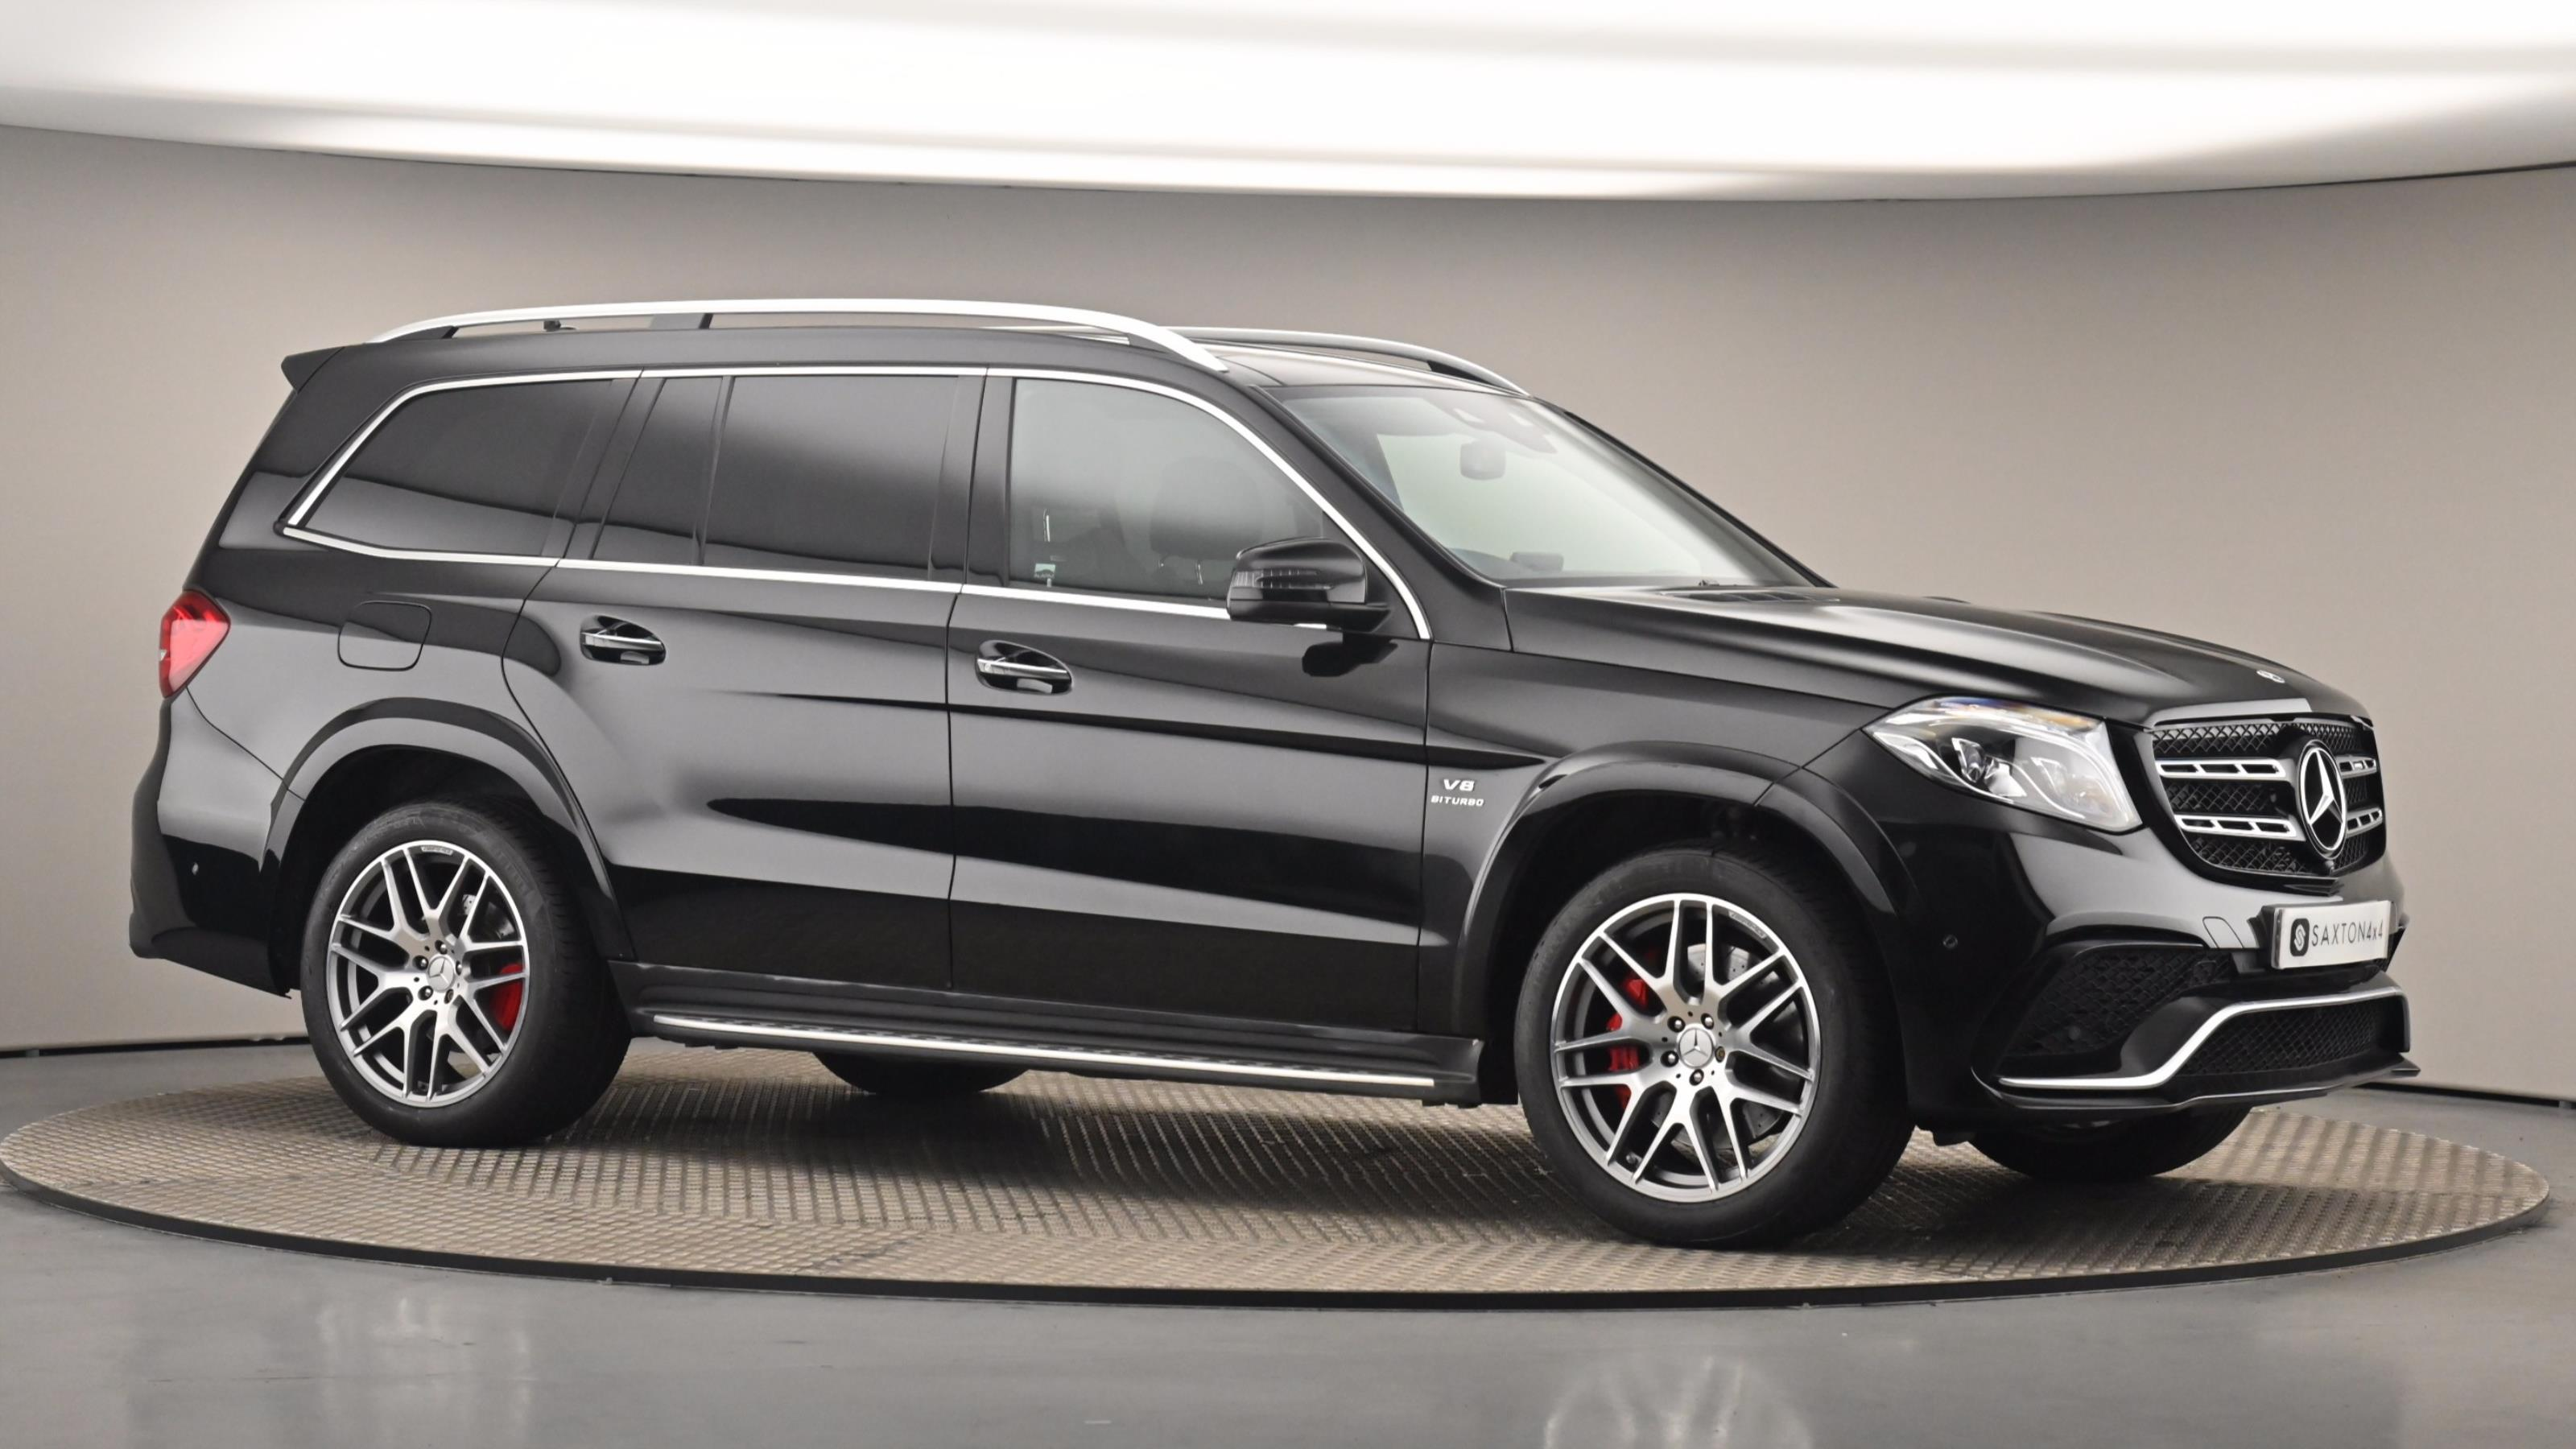 Used 2018 Mercedes-Benz GLS GLS 63 4Matic 5dr 7G-Tronic at Saxton4x4